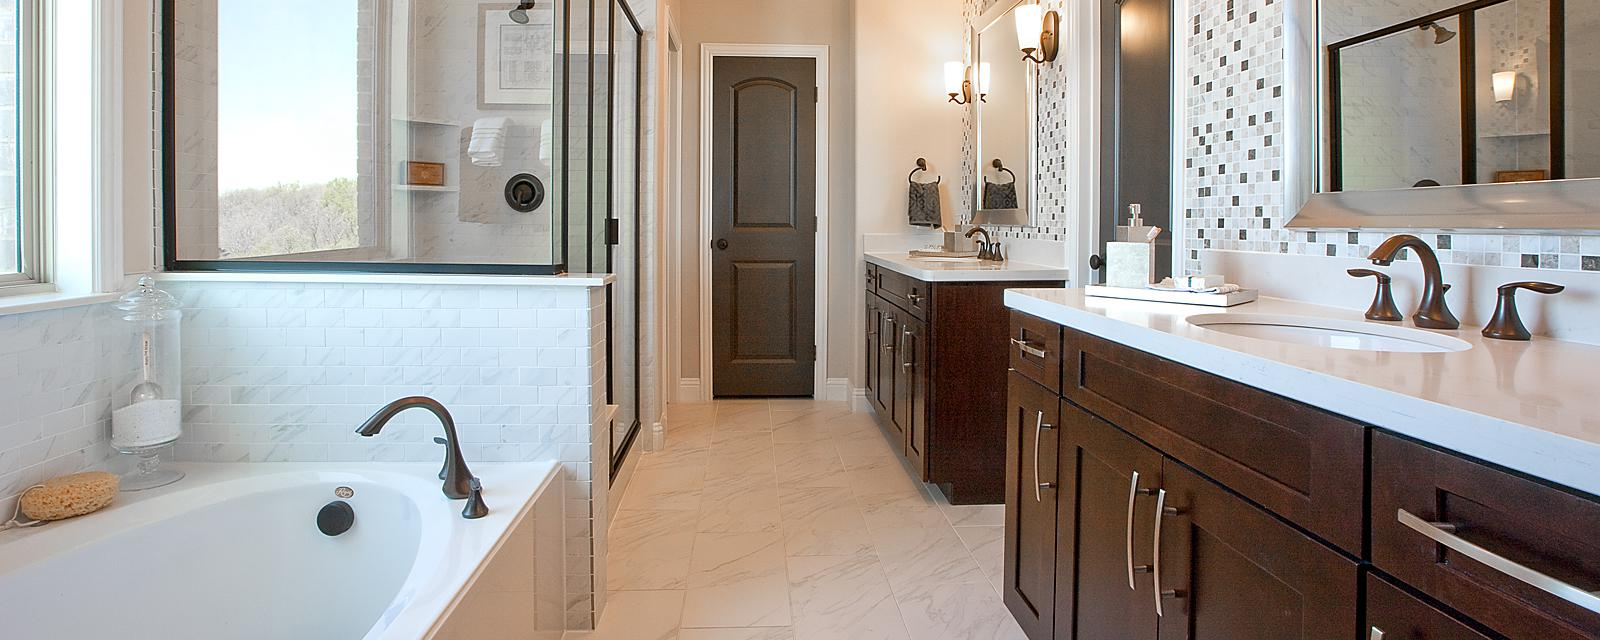 public://division/Dallas/plans/Katy 5288-CJKL/hero/Katy_Master-Bath.jpg